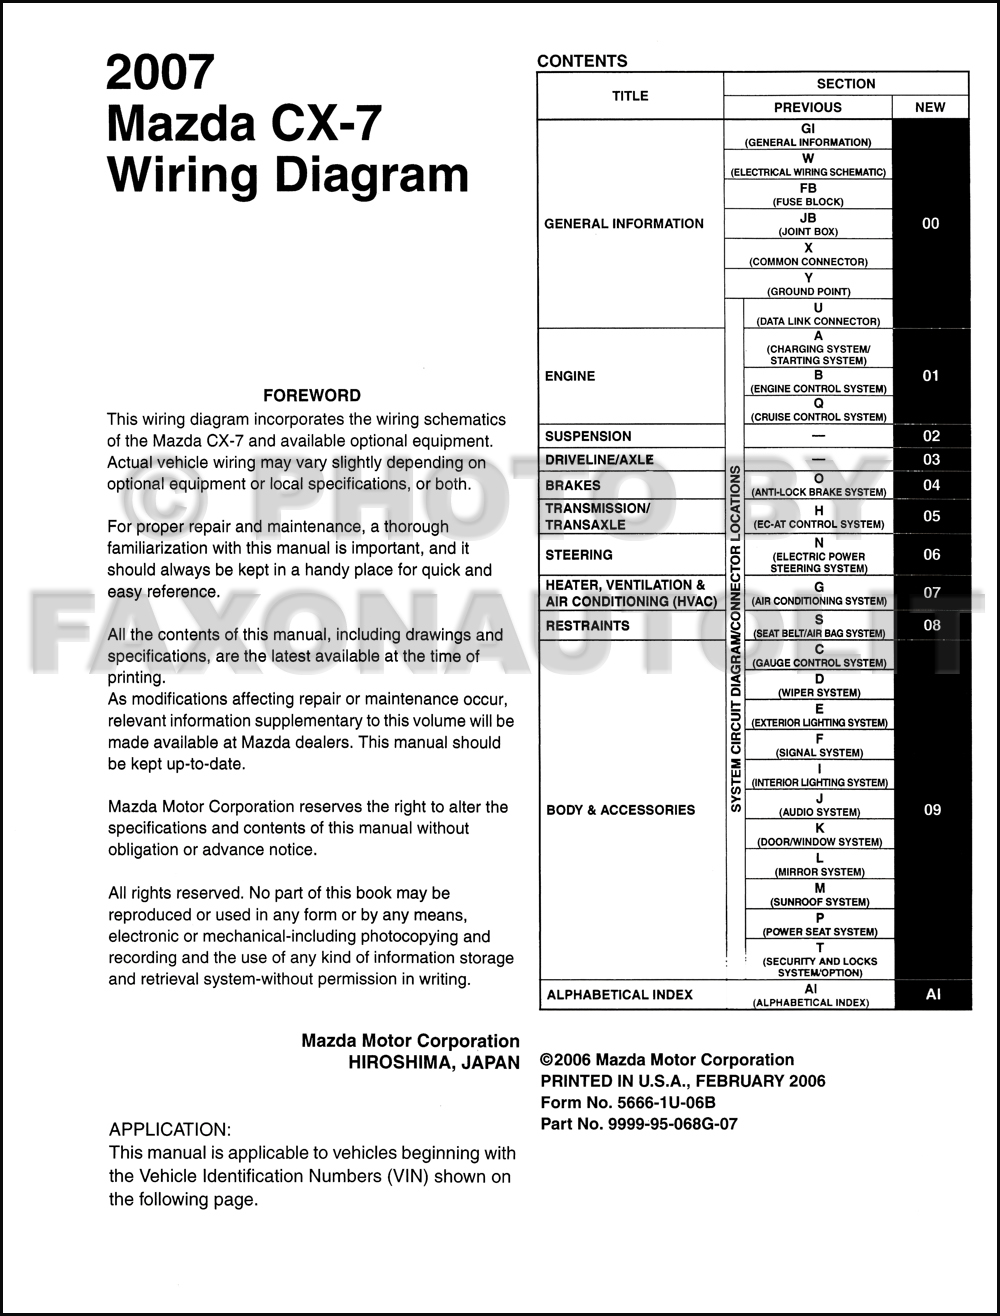 Wiring Diagram For Mazda Cx 7 Portal 2002 Protege5 2007 Manual Original Rh Faxonautoliterature Com 626 Radio